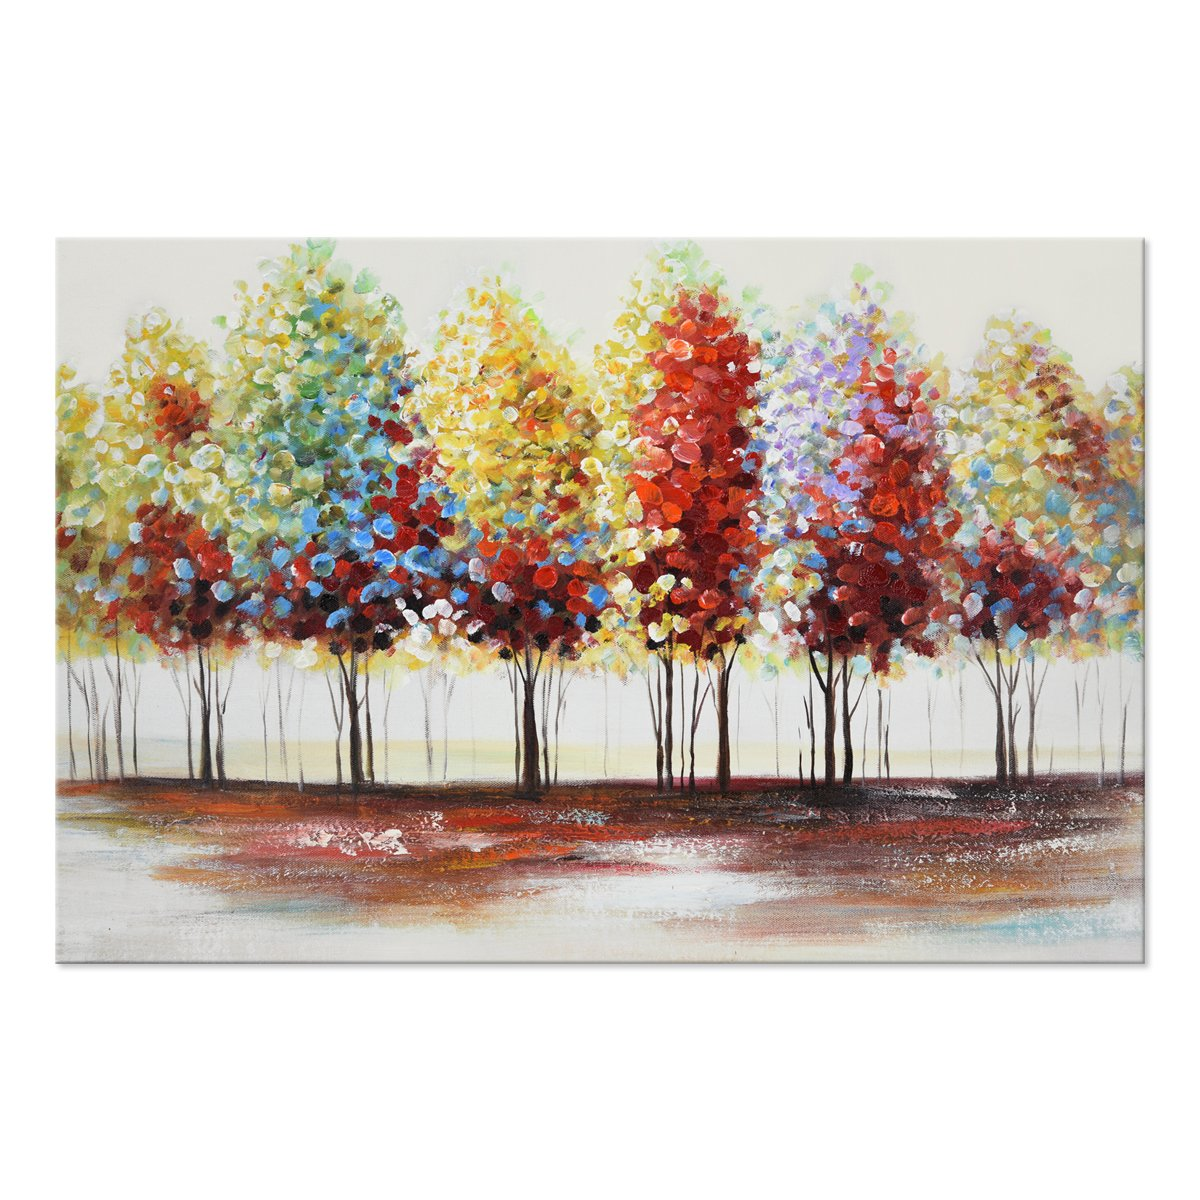 SEVEN WALL ARTS 100/% Hand Painted Oil Painting Landscape Abstract Colorful Trees with Stretched Frame 60x90cm